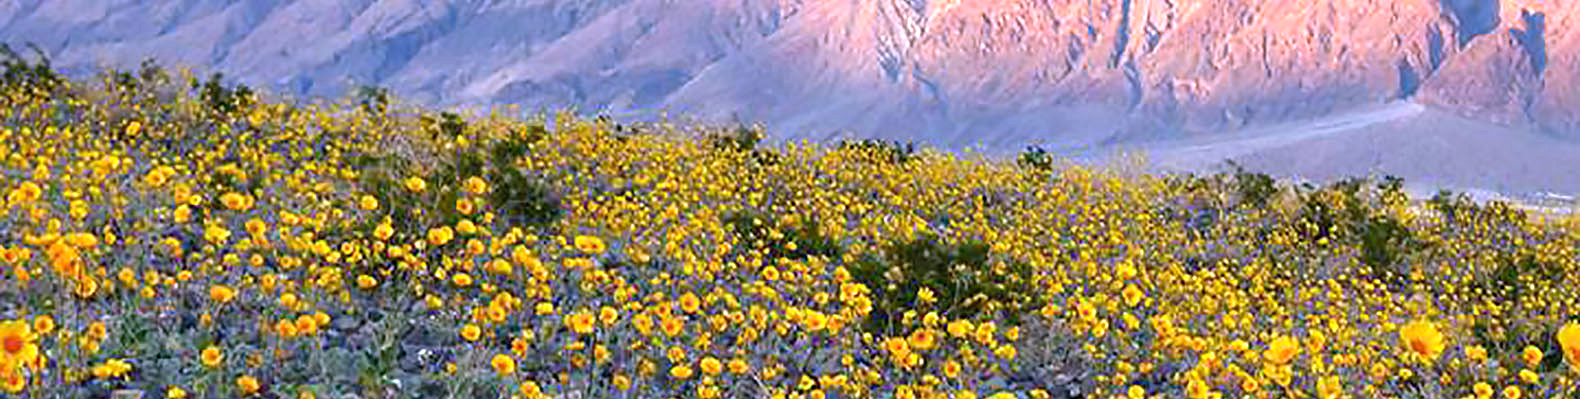 Death valley springs to life with millions of flowers in rare super death valley springs to life with millions of flowers in rare super bloom inhabitat green design innovation architecture green building mightylinksfo